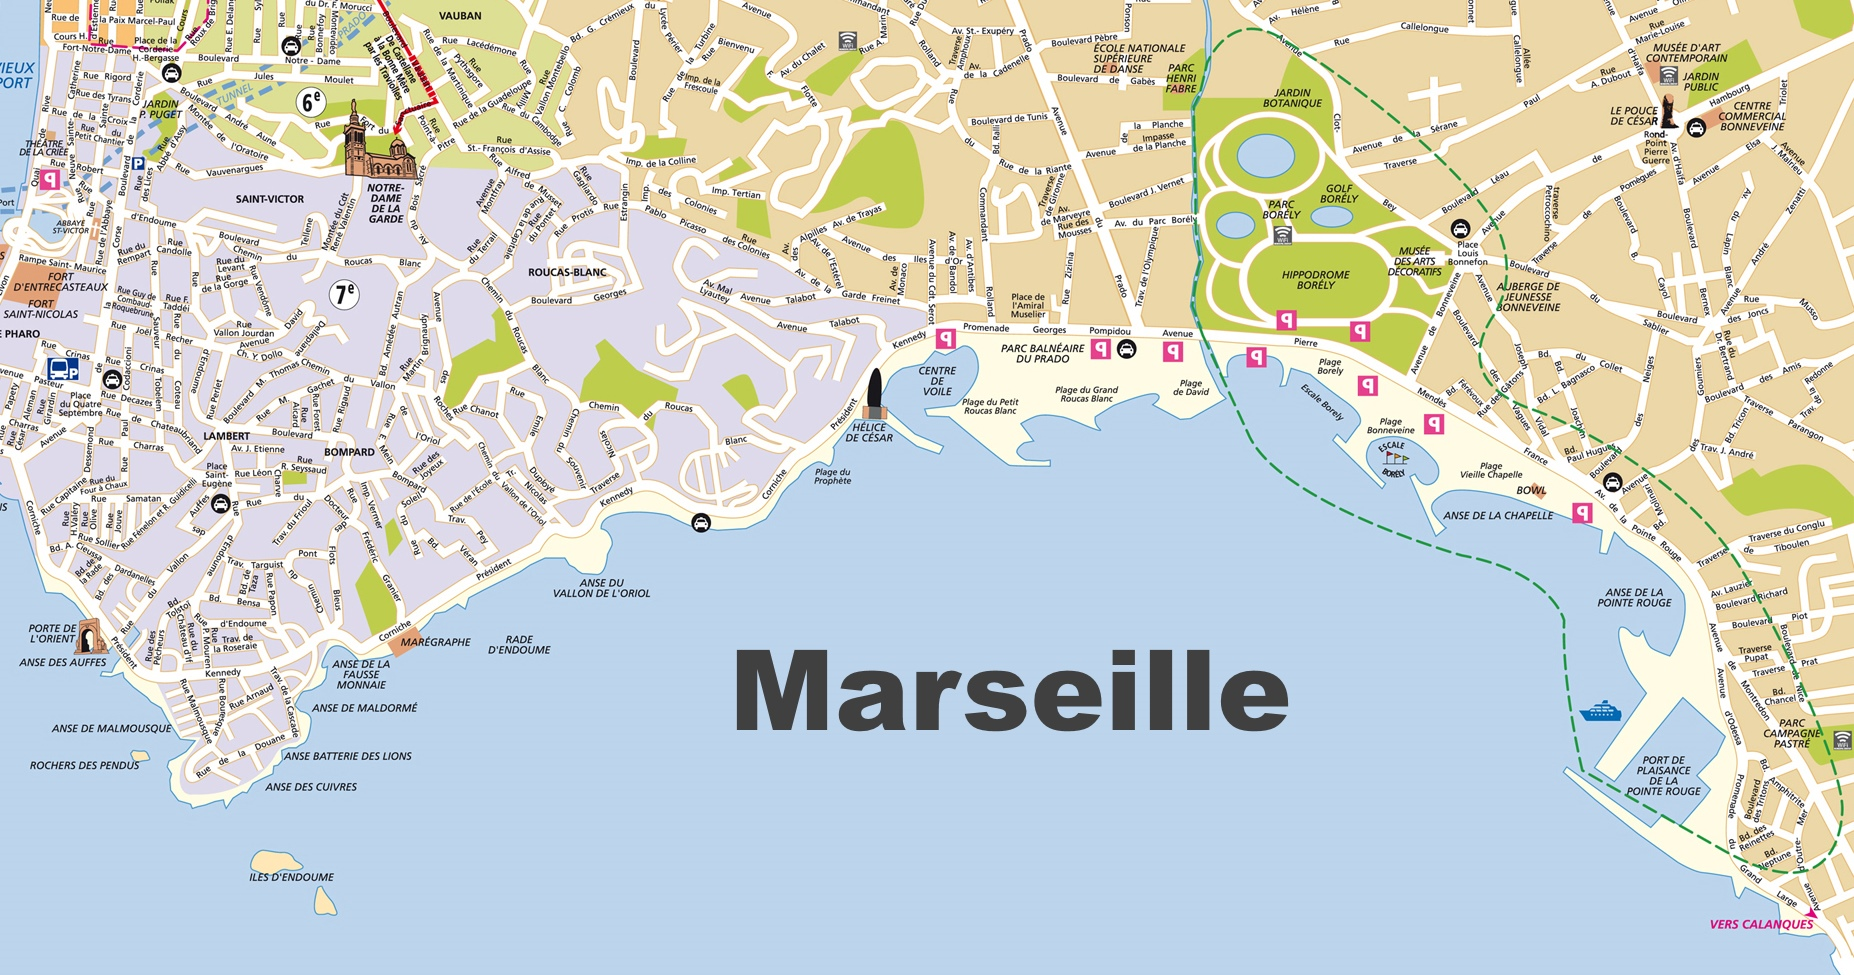 Marseilles France Map Marseille Maps | France | Maps of Marseille